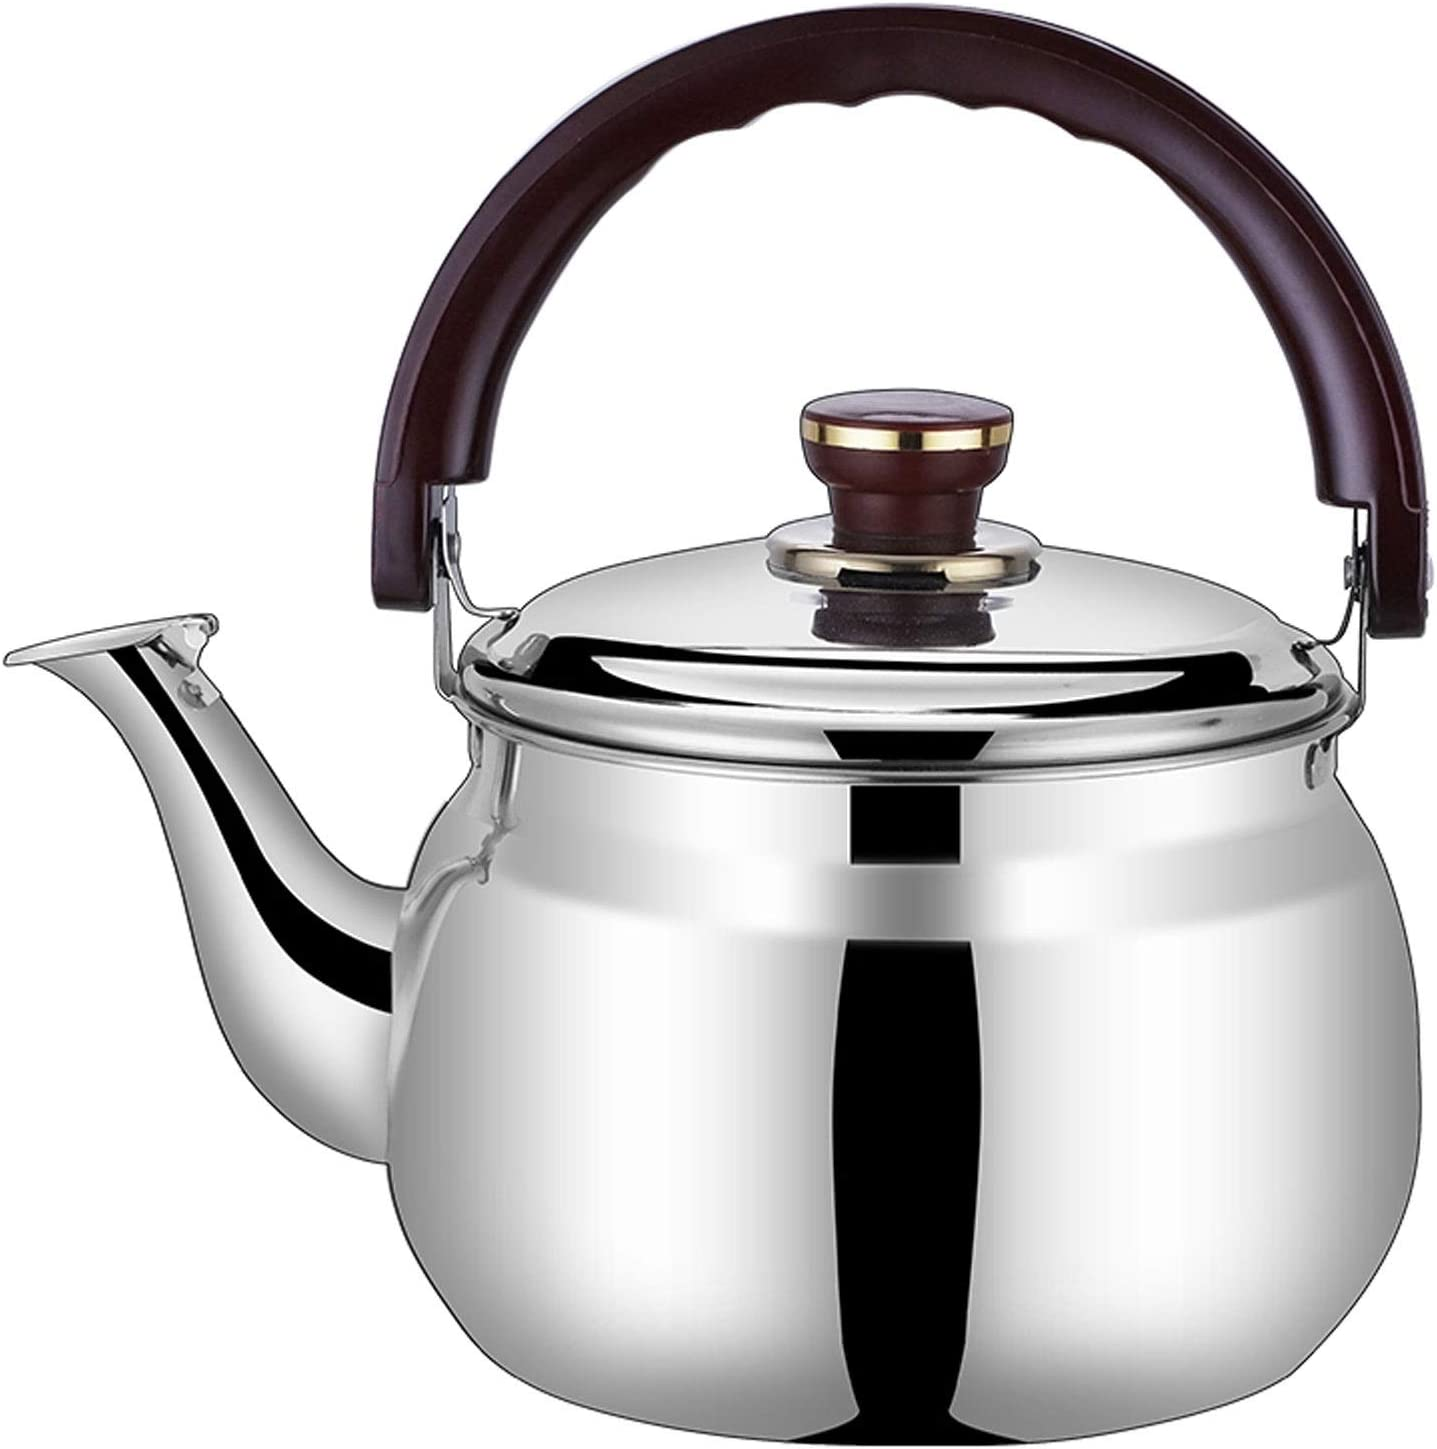 Mini We OFFer at cheap prices Whistling Tea Portland Mall Kettle Handle Anti-Scalding Steel Stainless